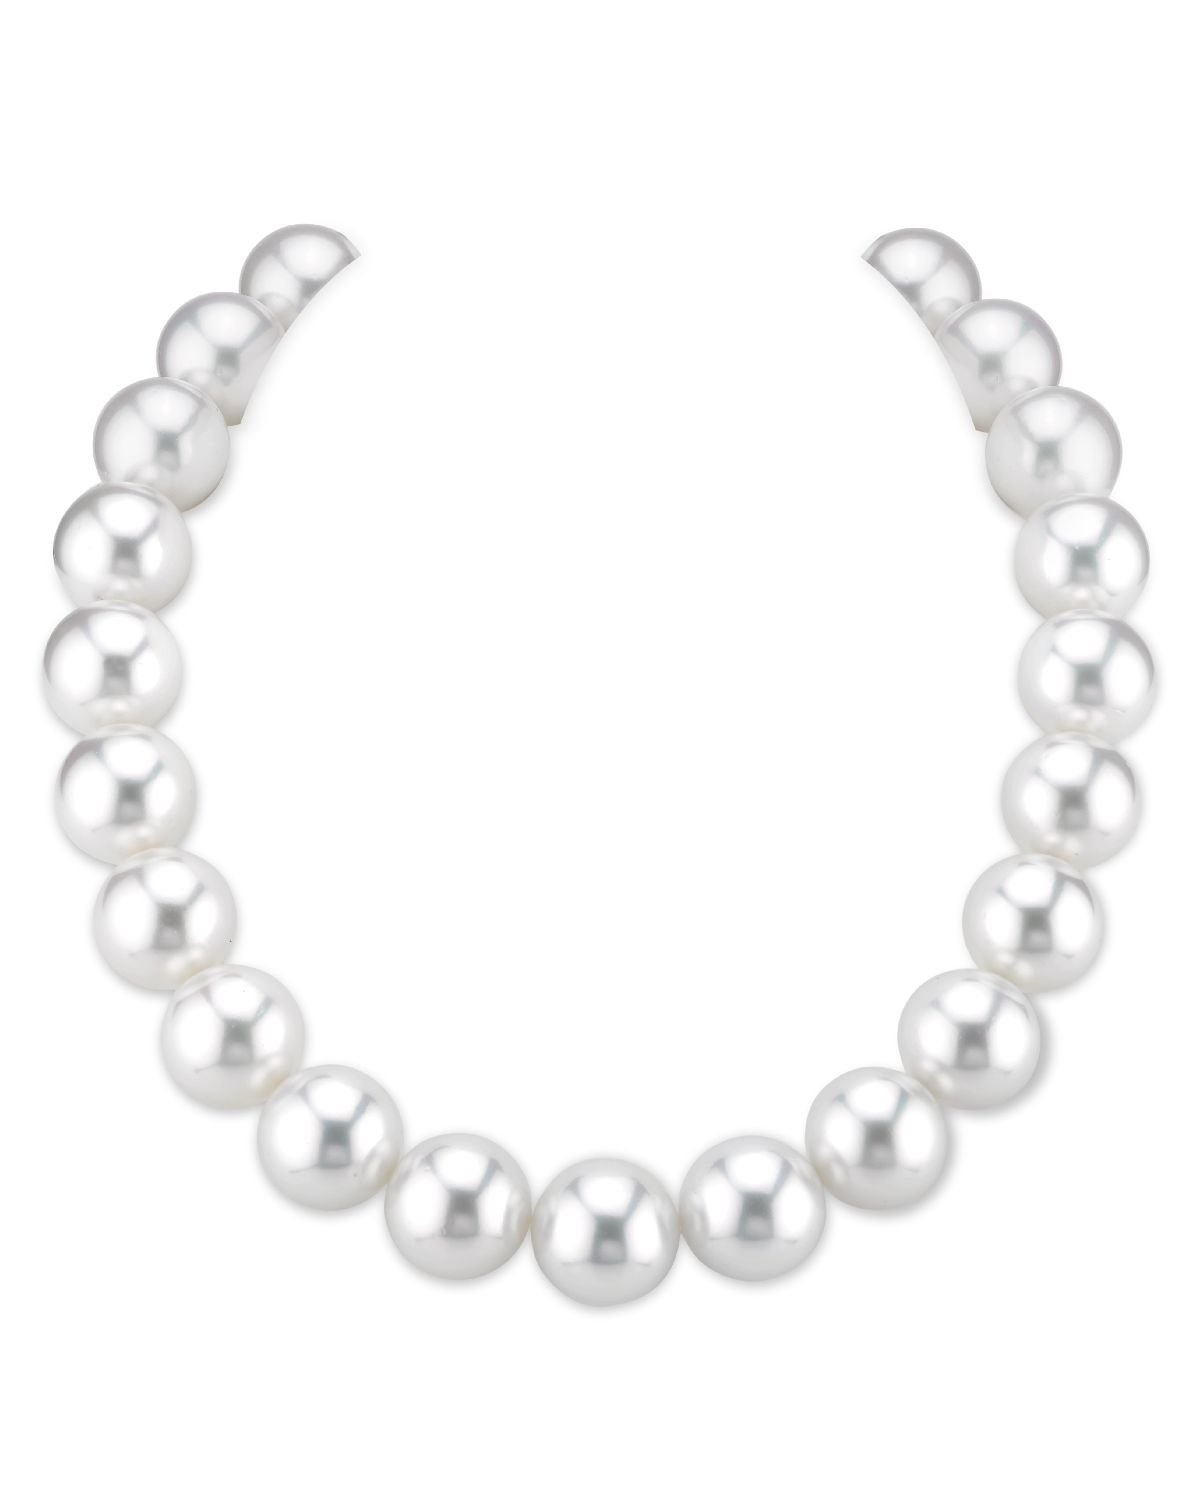 RARE 16-17mm White South Sea Pearl Necklace - AAAA Quality